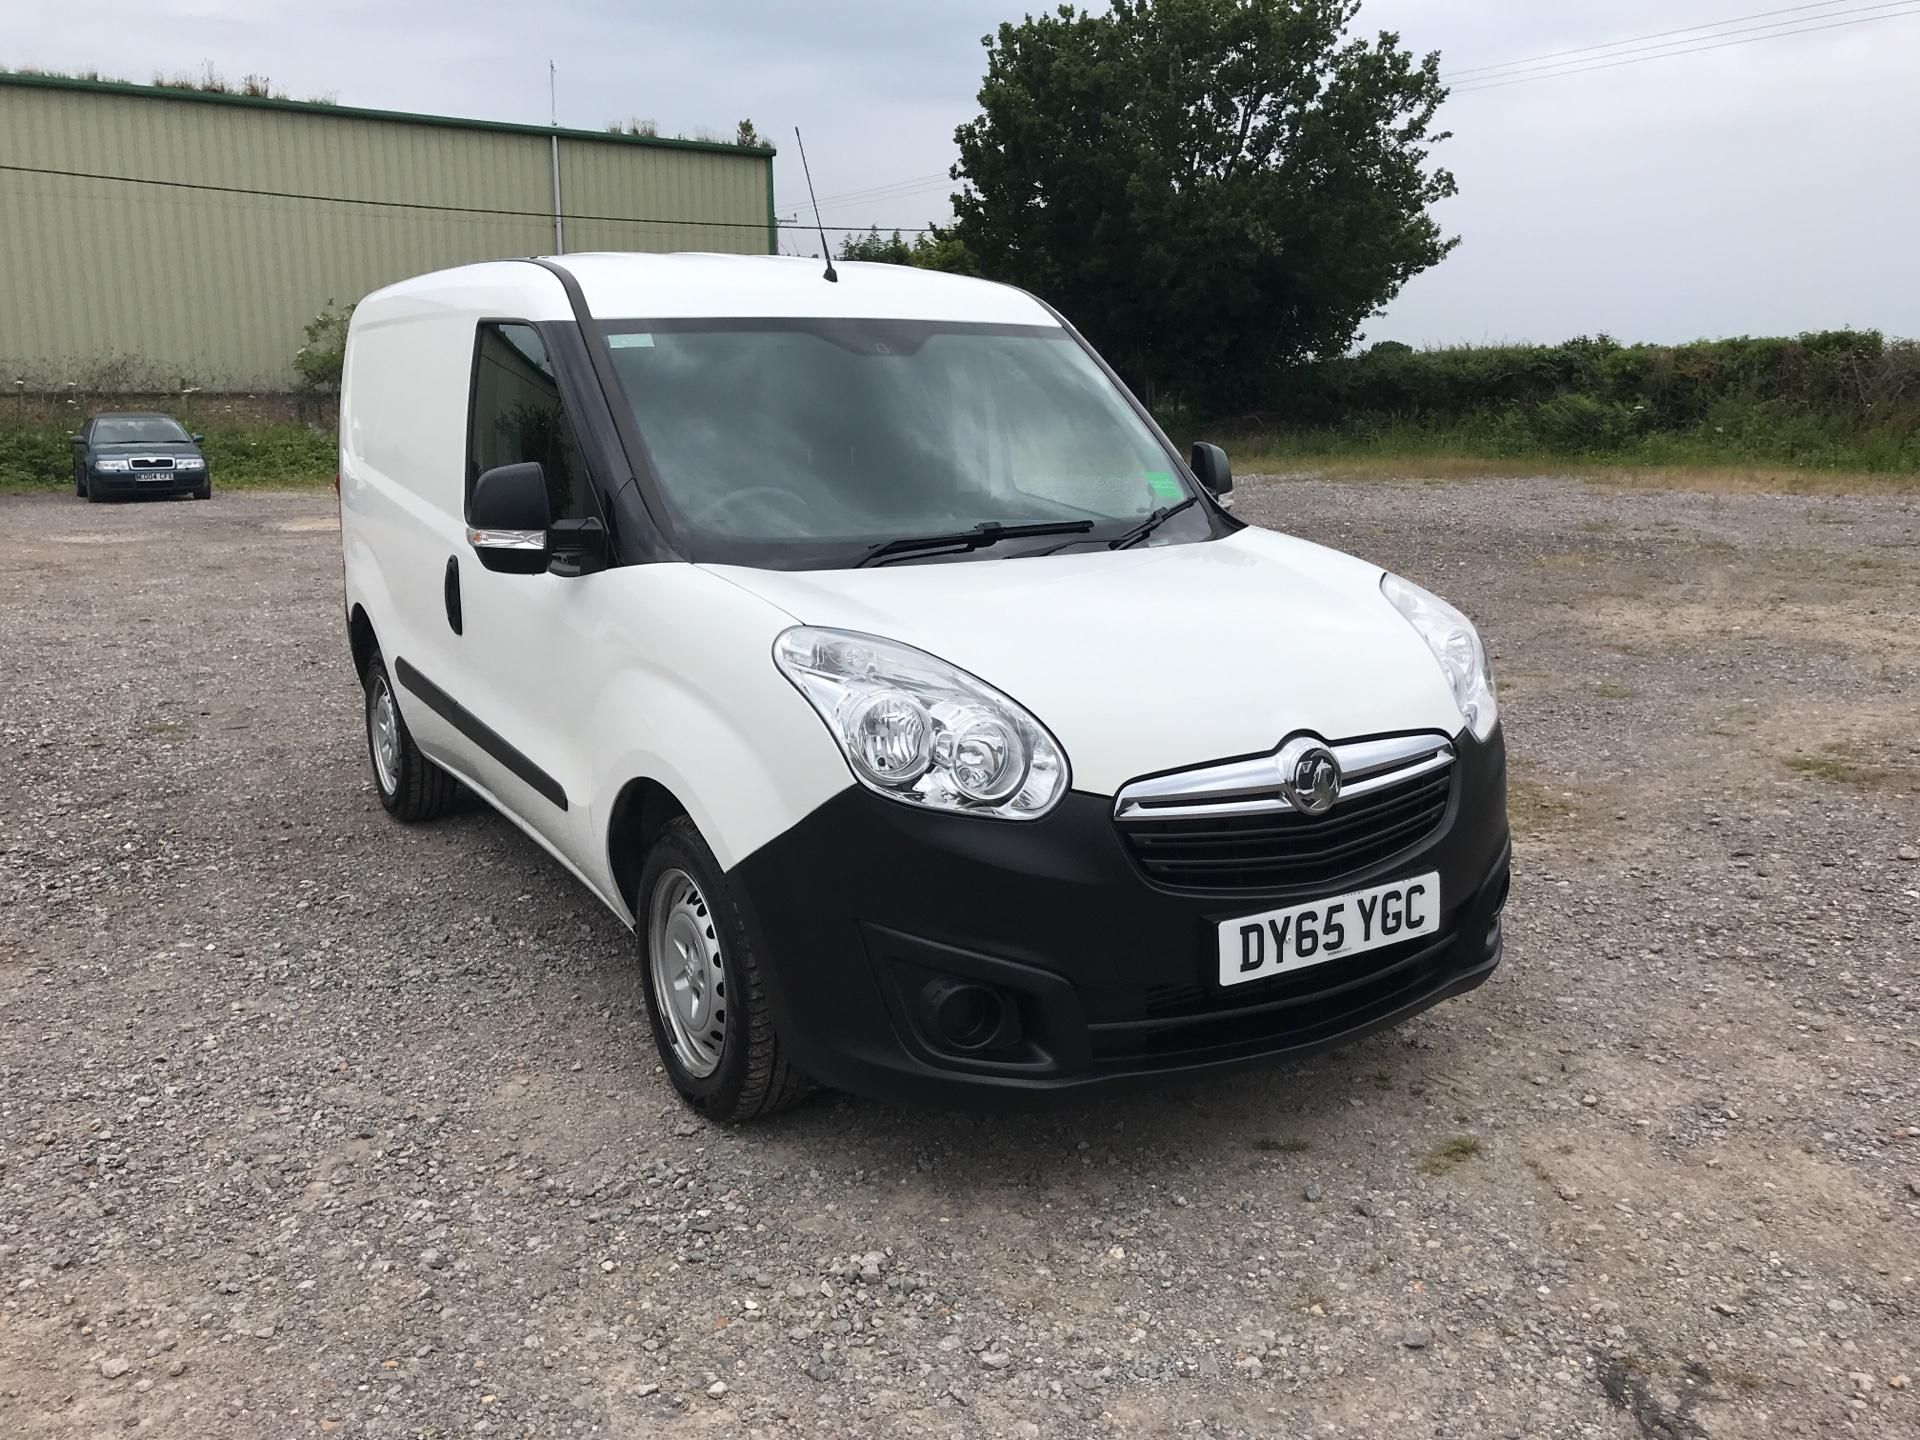 2015 Vauxhall Combo L1 H1 2000 1.3 16V EURO 5 (DY65YGC)